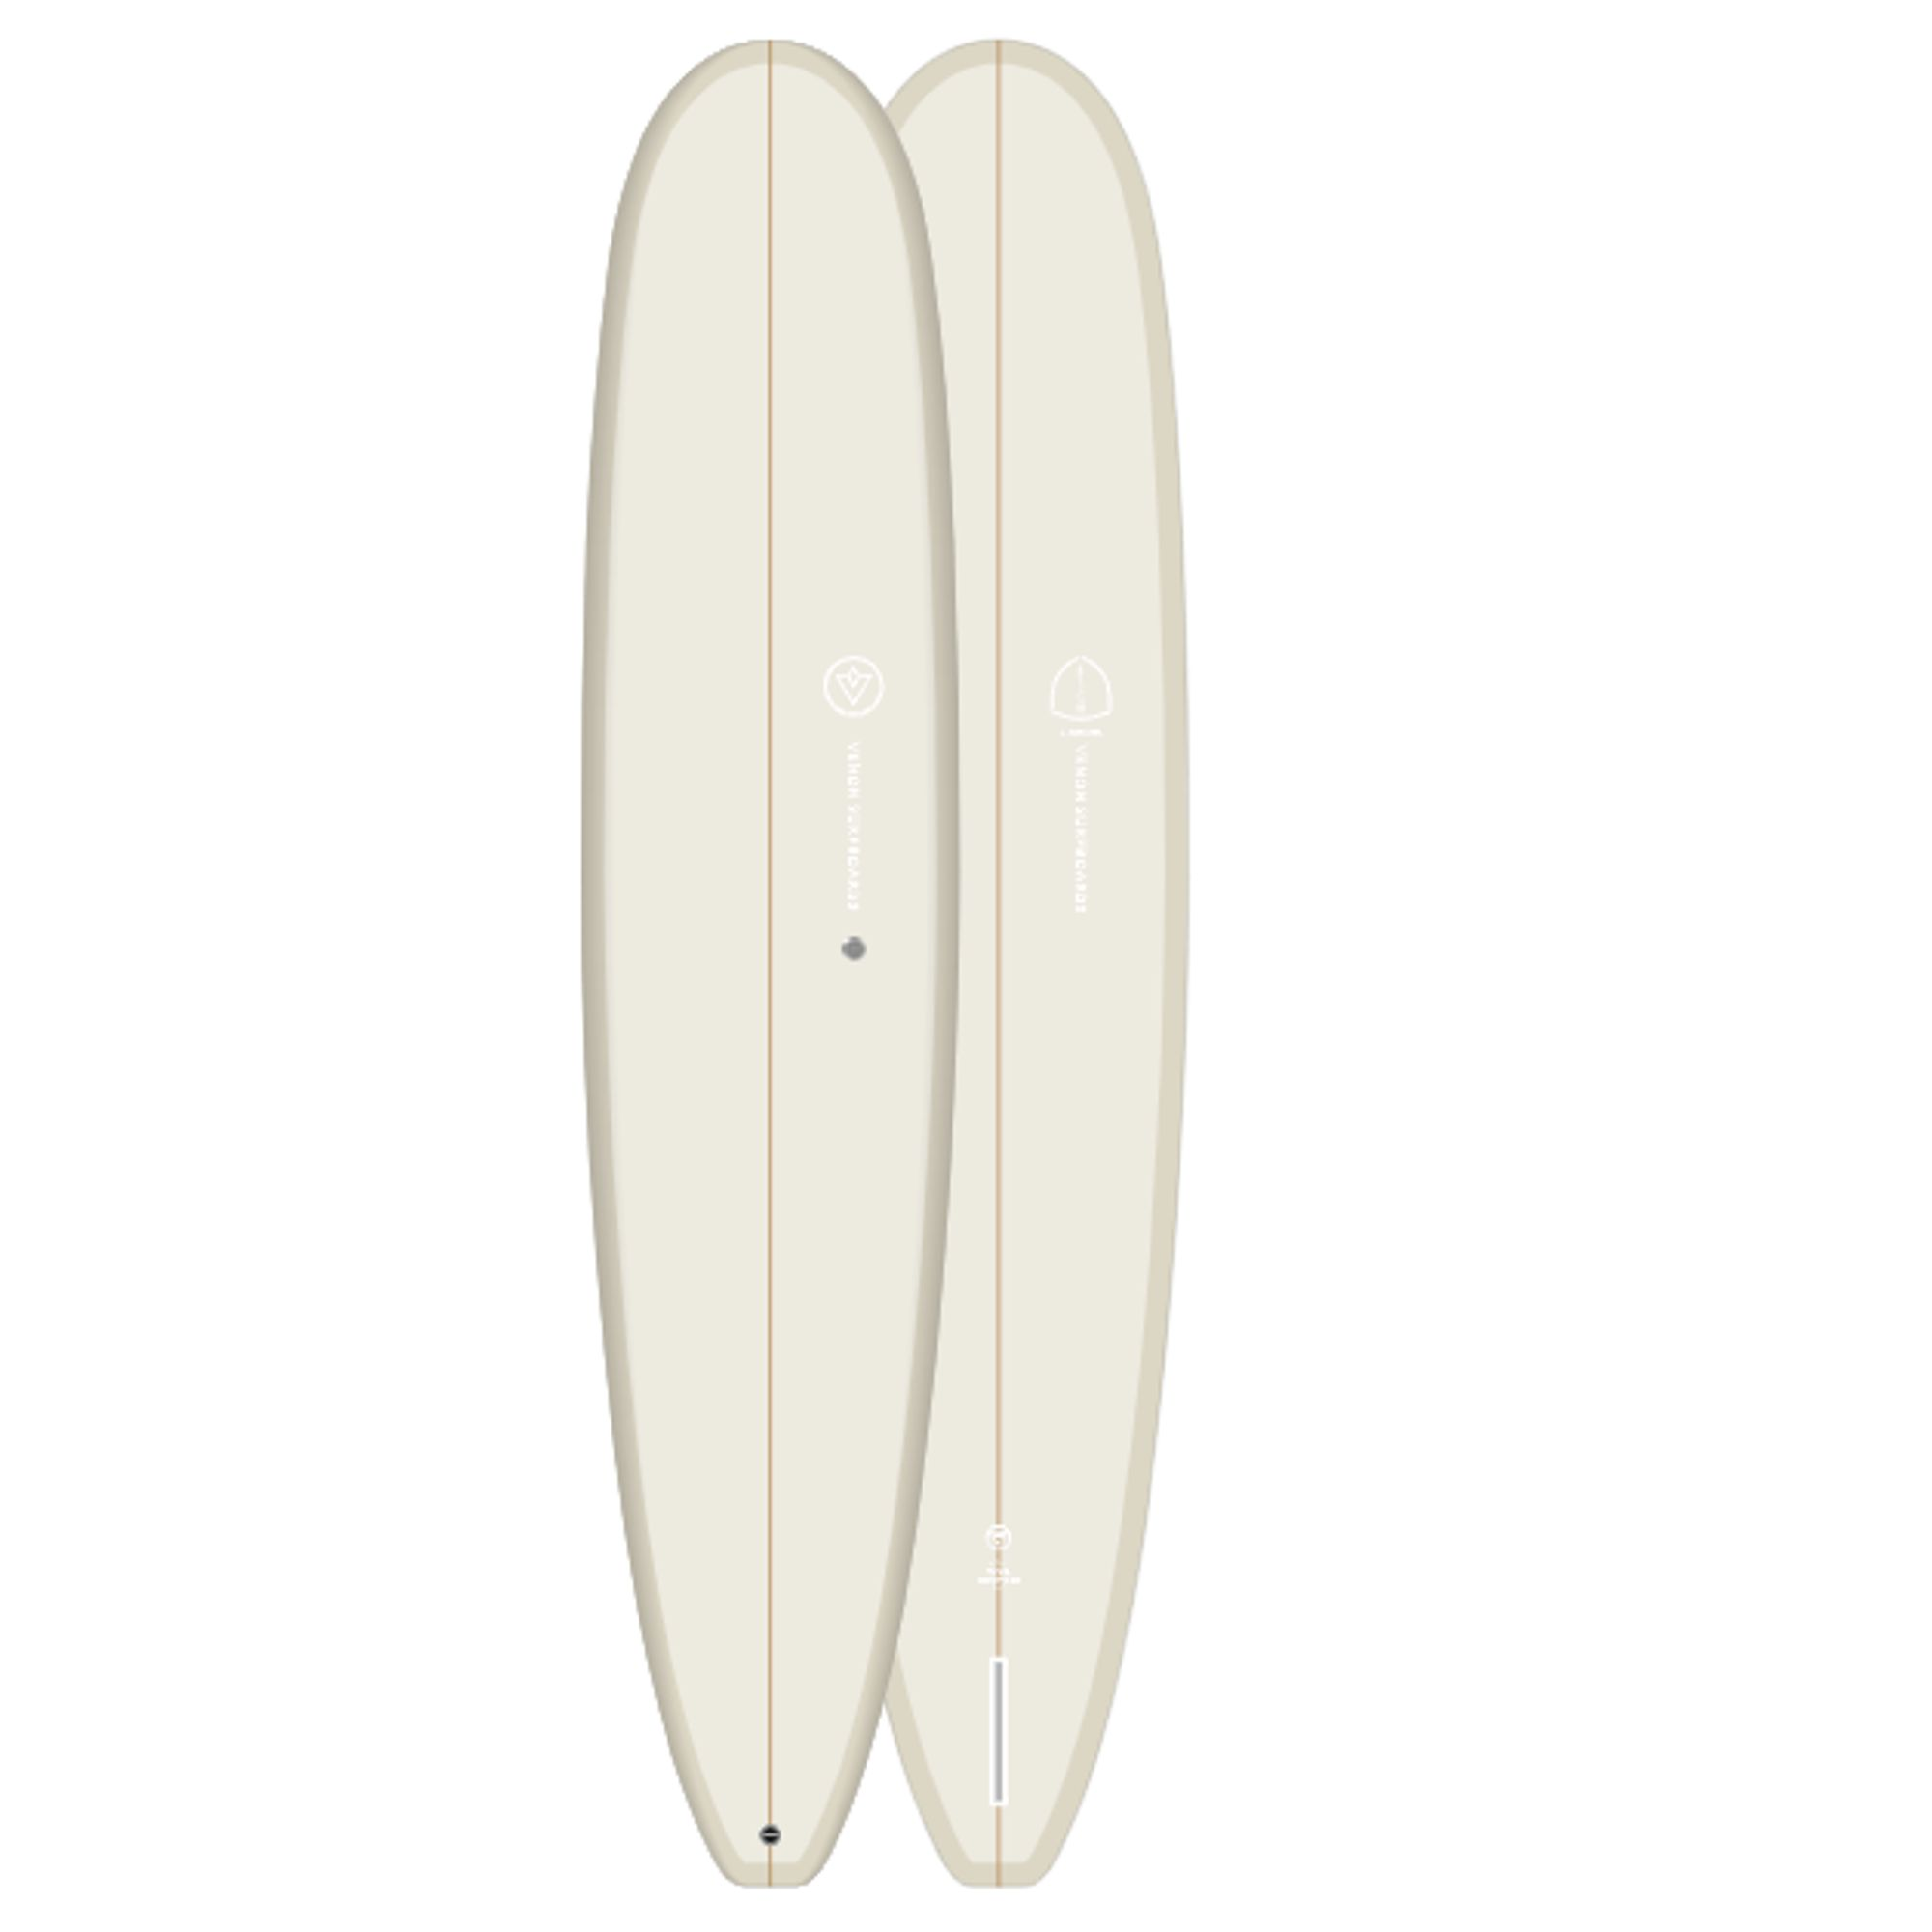 Surfboard VENON Landmark 9.2 Longboard Cream